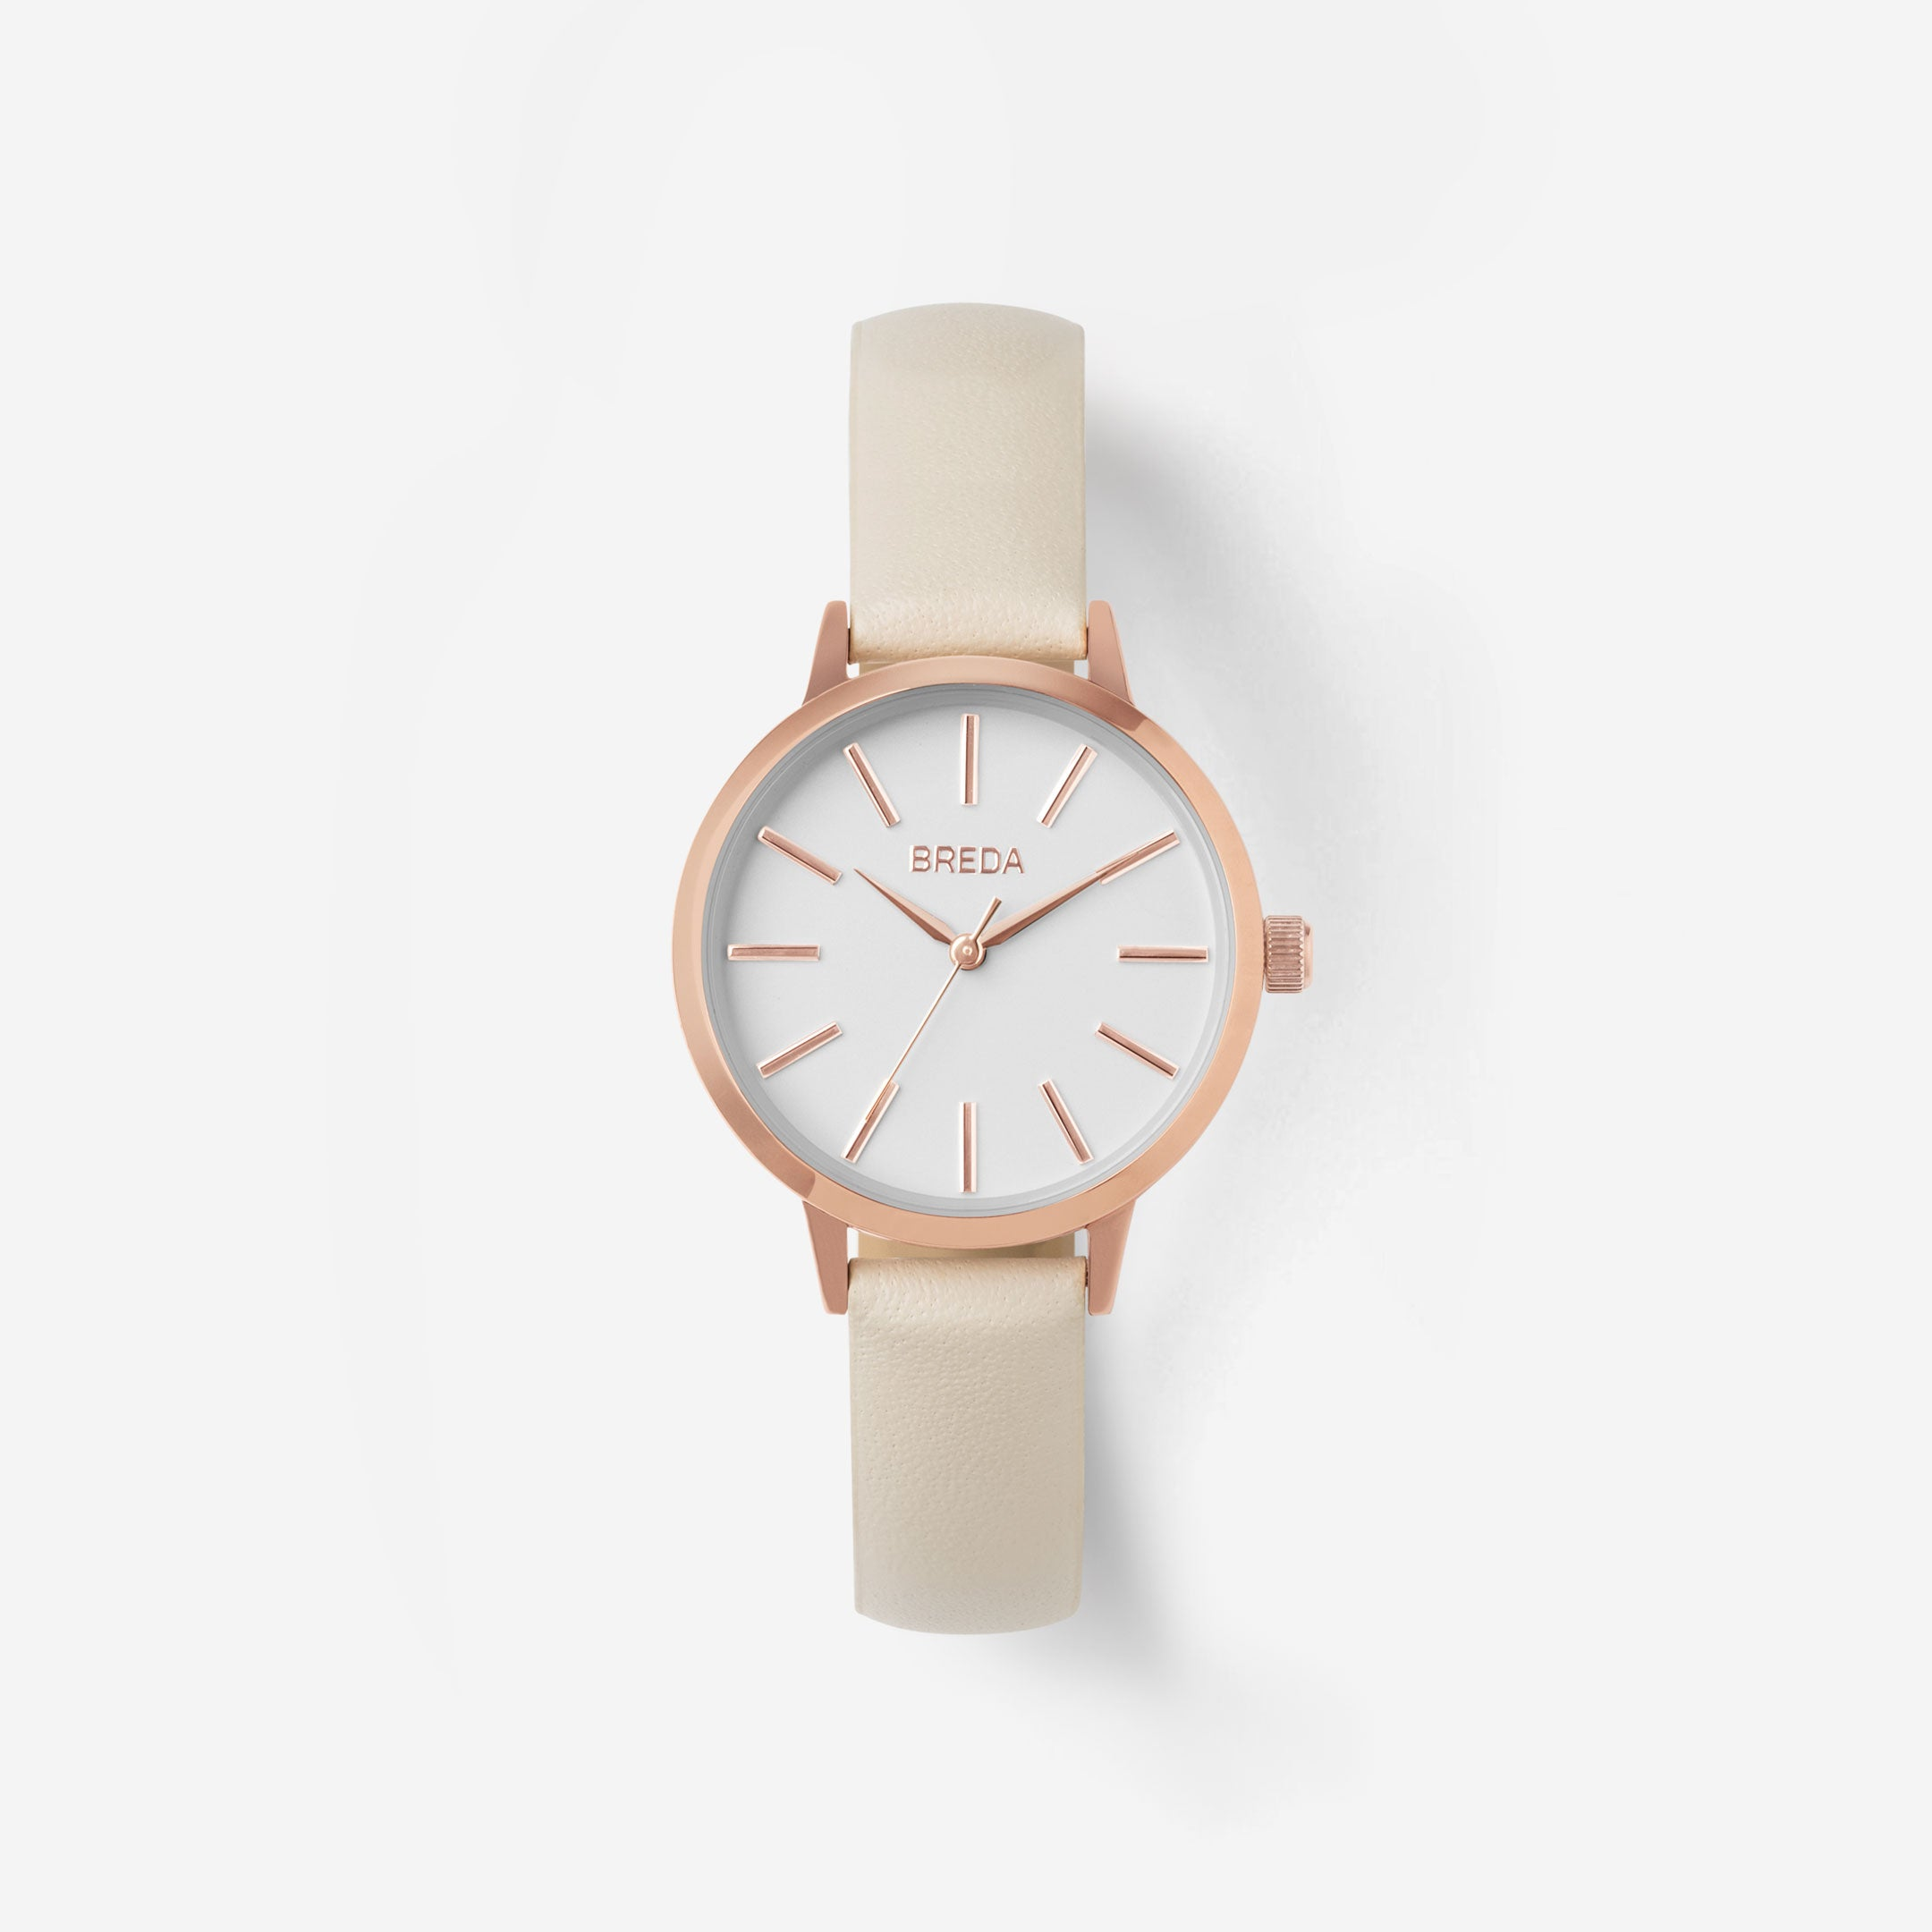 //cdn.shopify.com/s/files/1/0879/6650/products/breda-petite-joule-1734c-rose-gold-cream-watch-front_1024x1024.jpg?v=1530901882